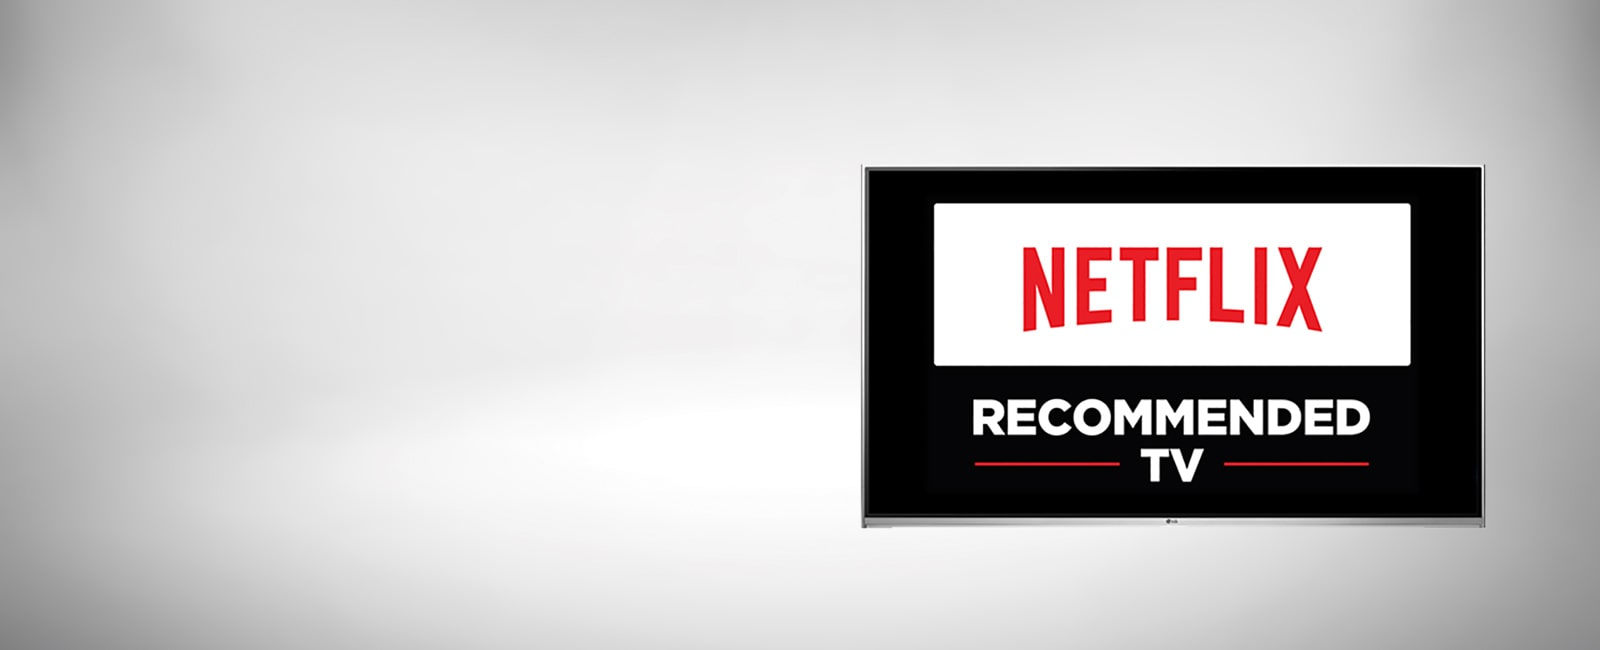 how to get netflix on tv lg